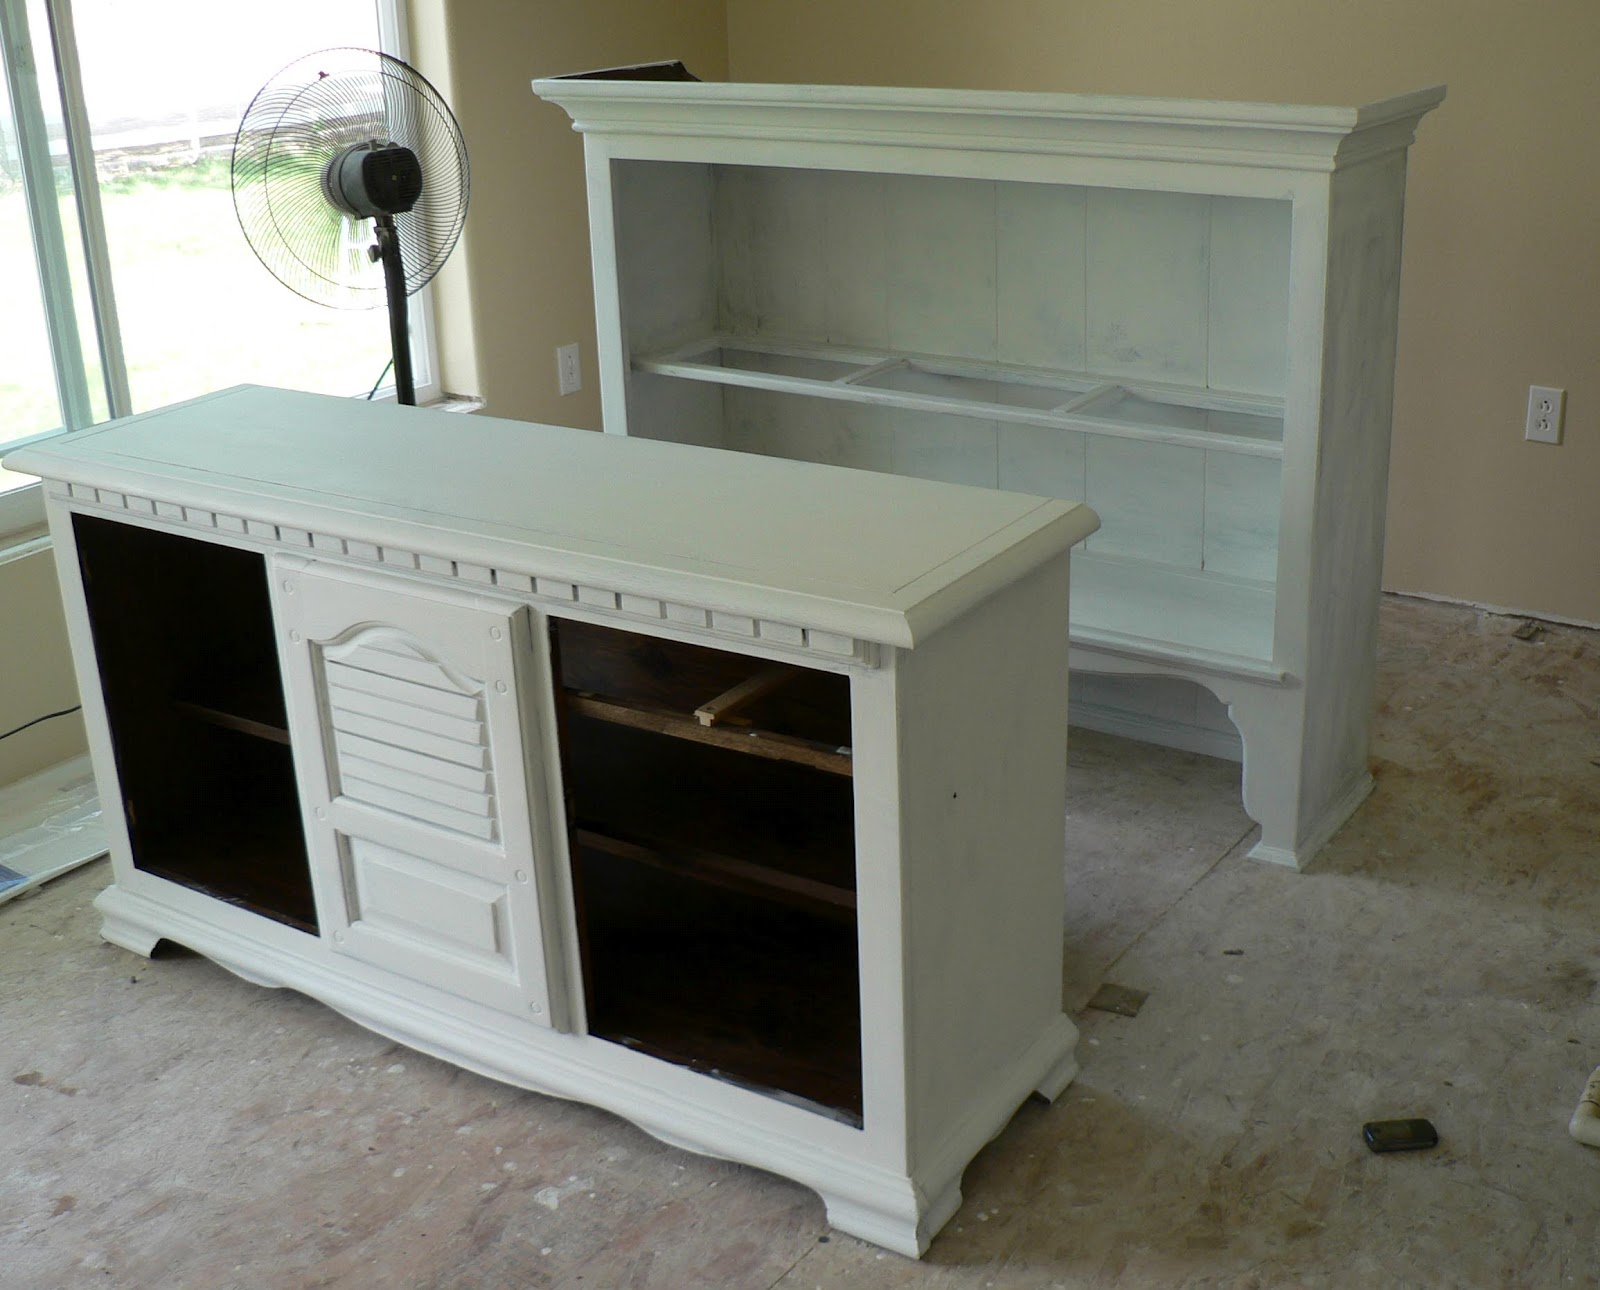 Painting Furniture To Make It Look Distressed - Paint furniture paint